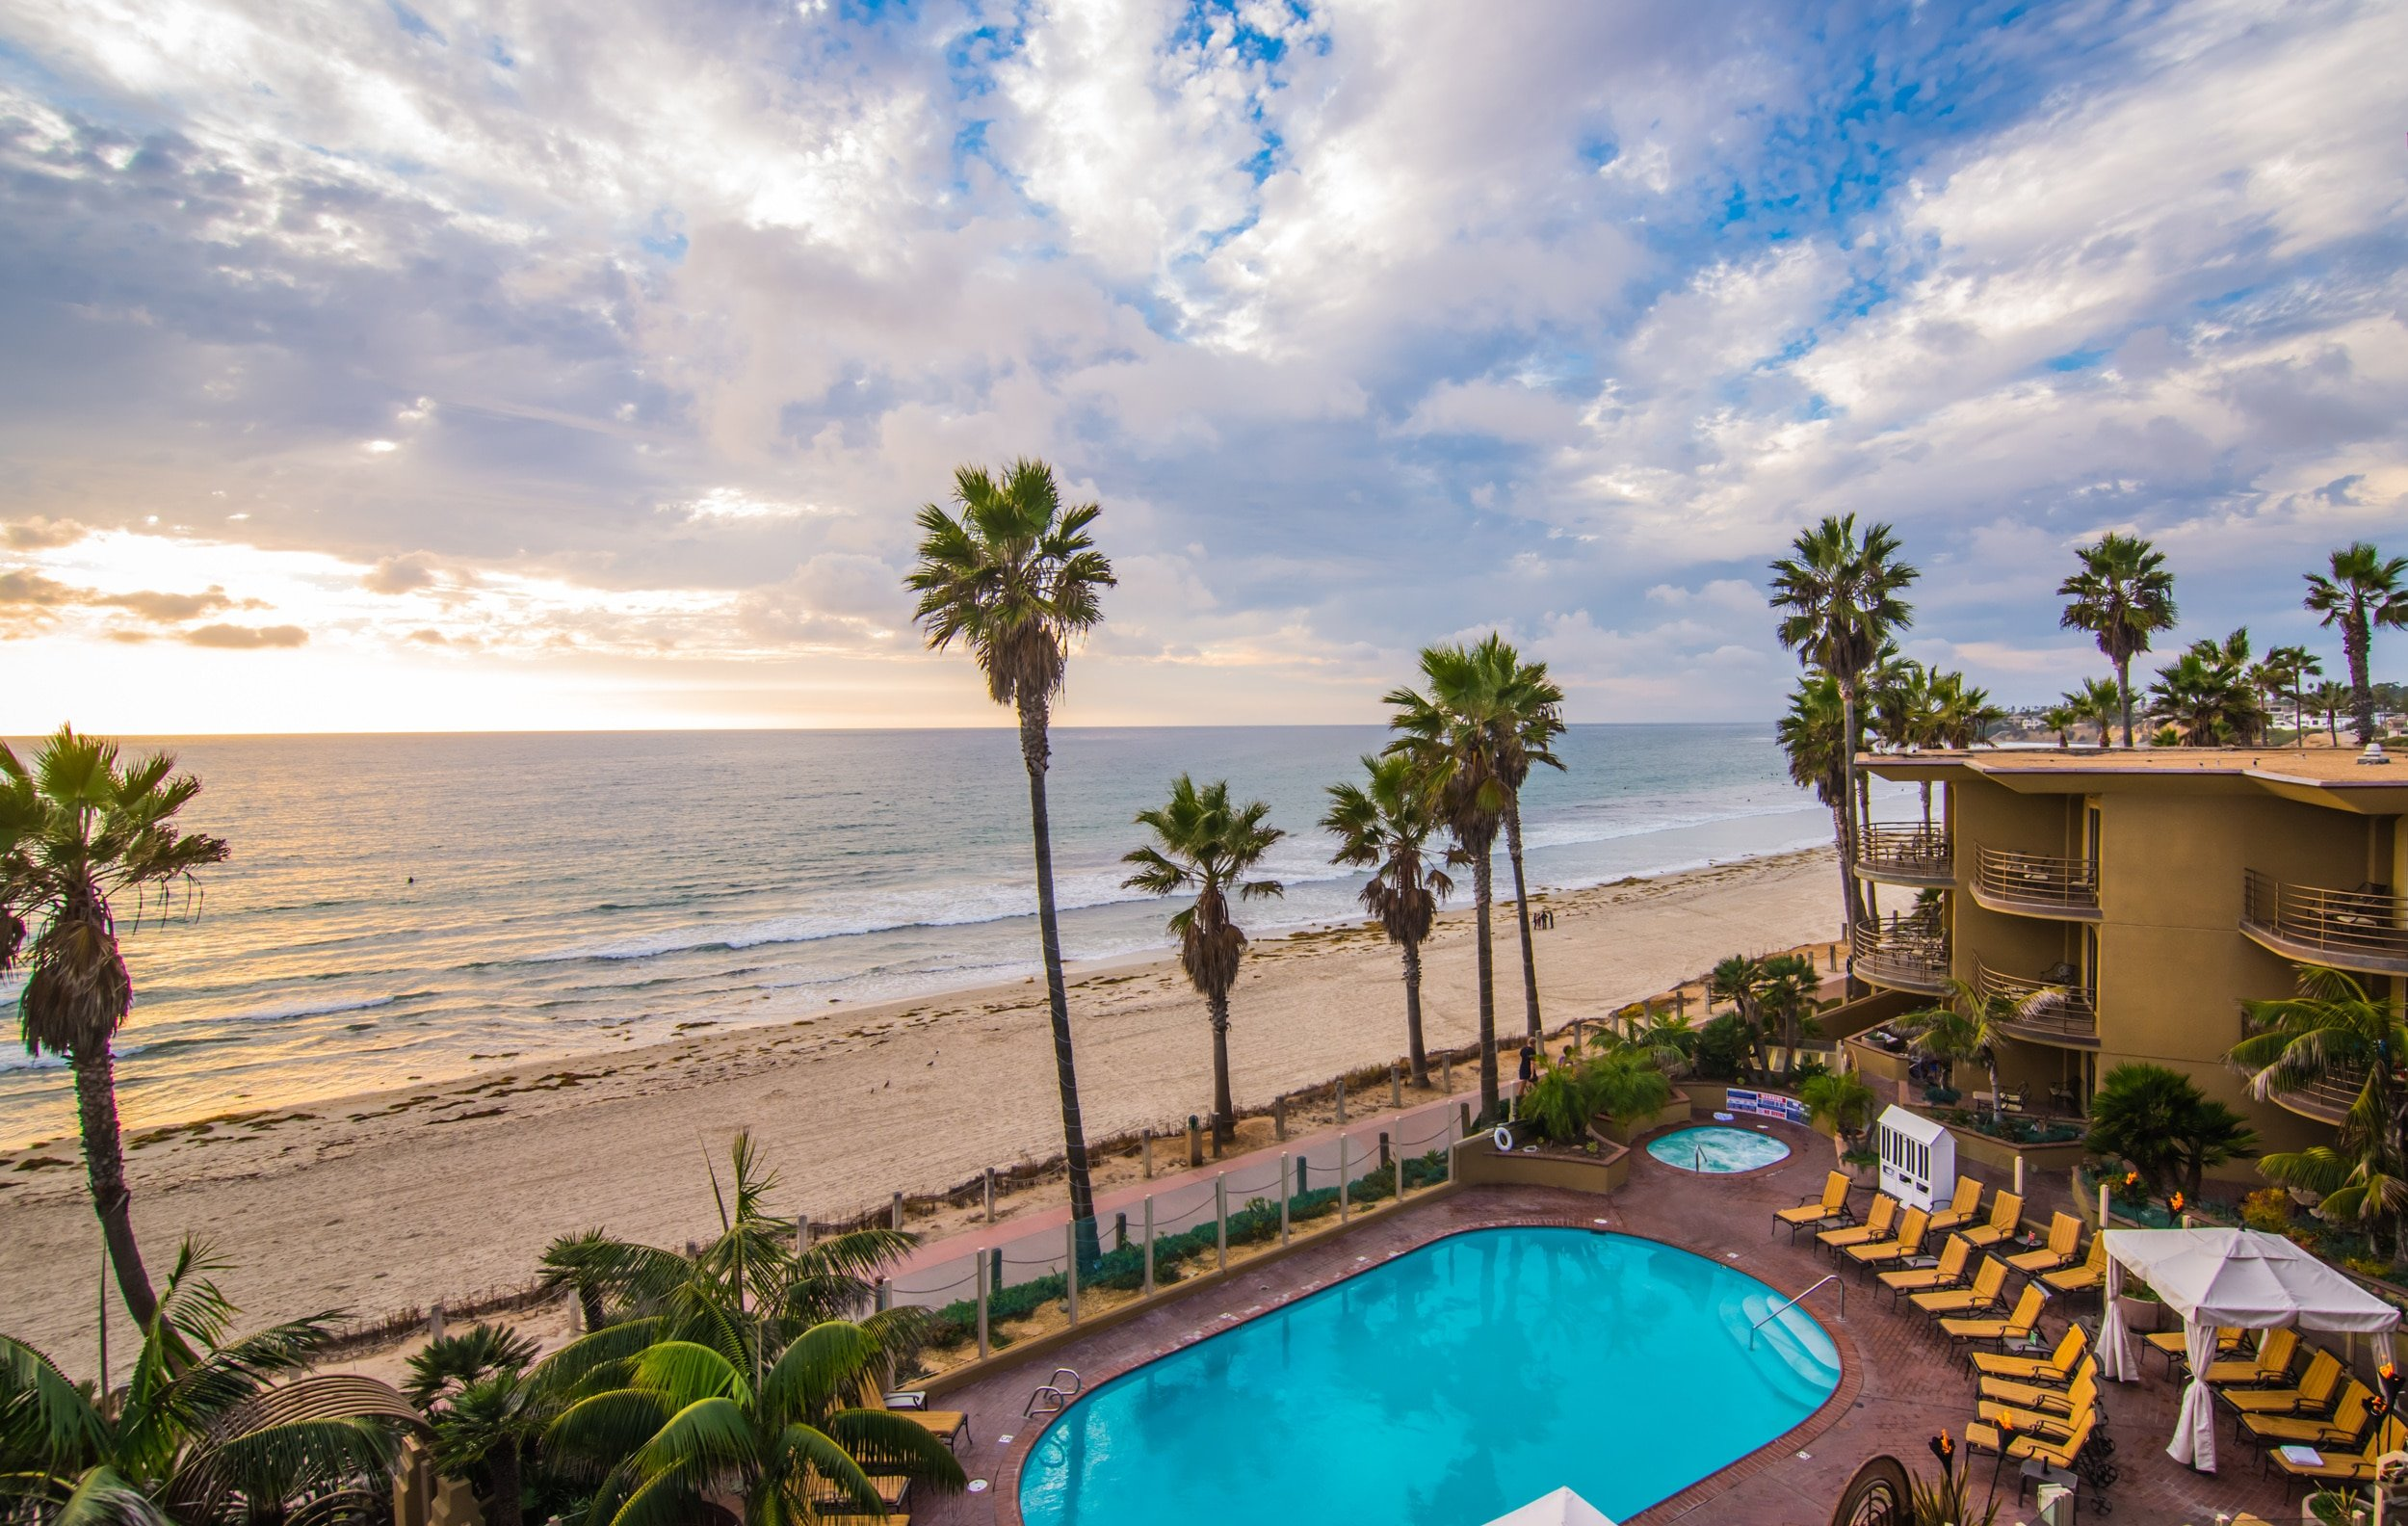 Pacific Terrace Hotel San Diego Review What To Expect La Jolla Mom